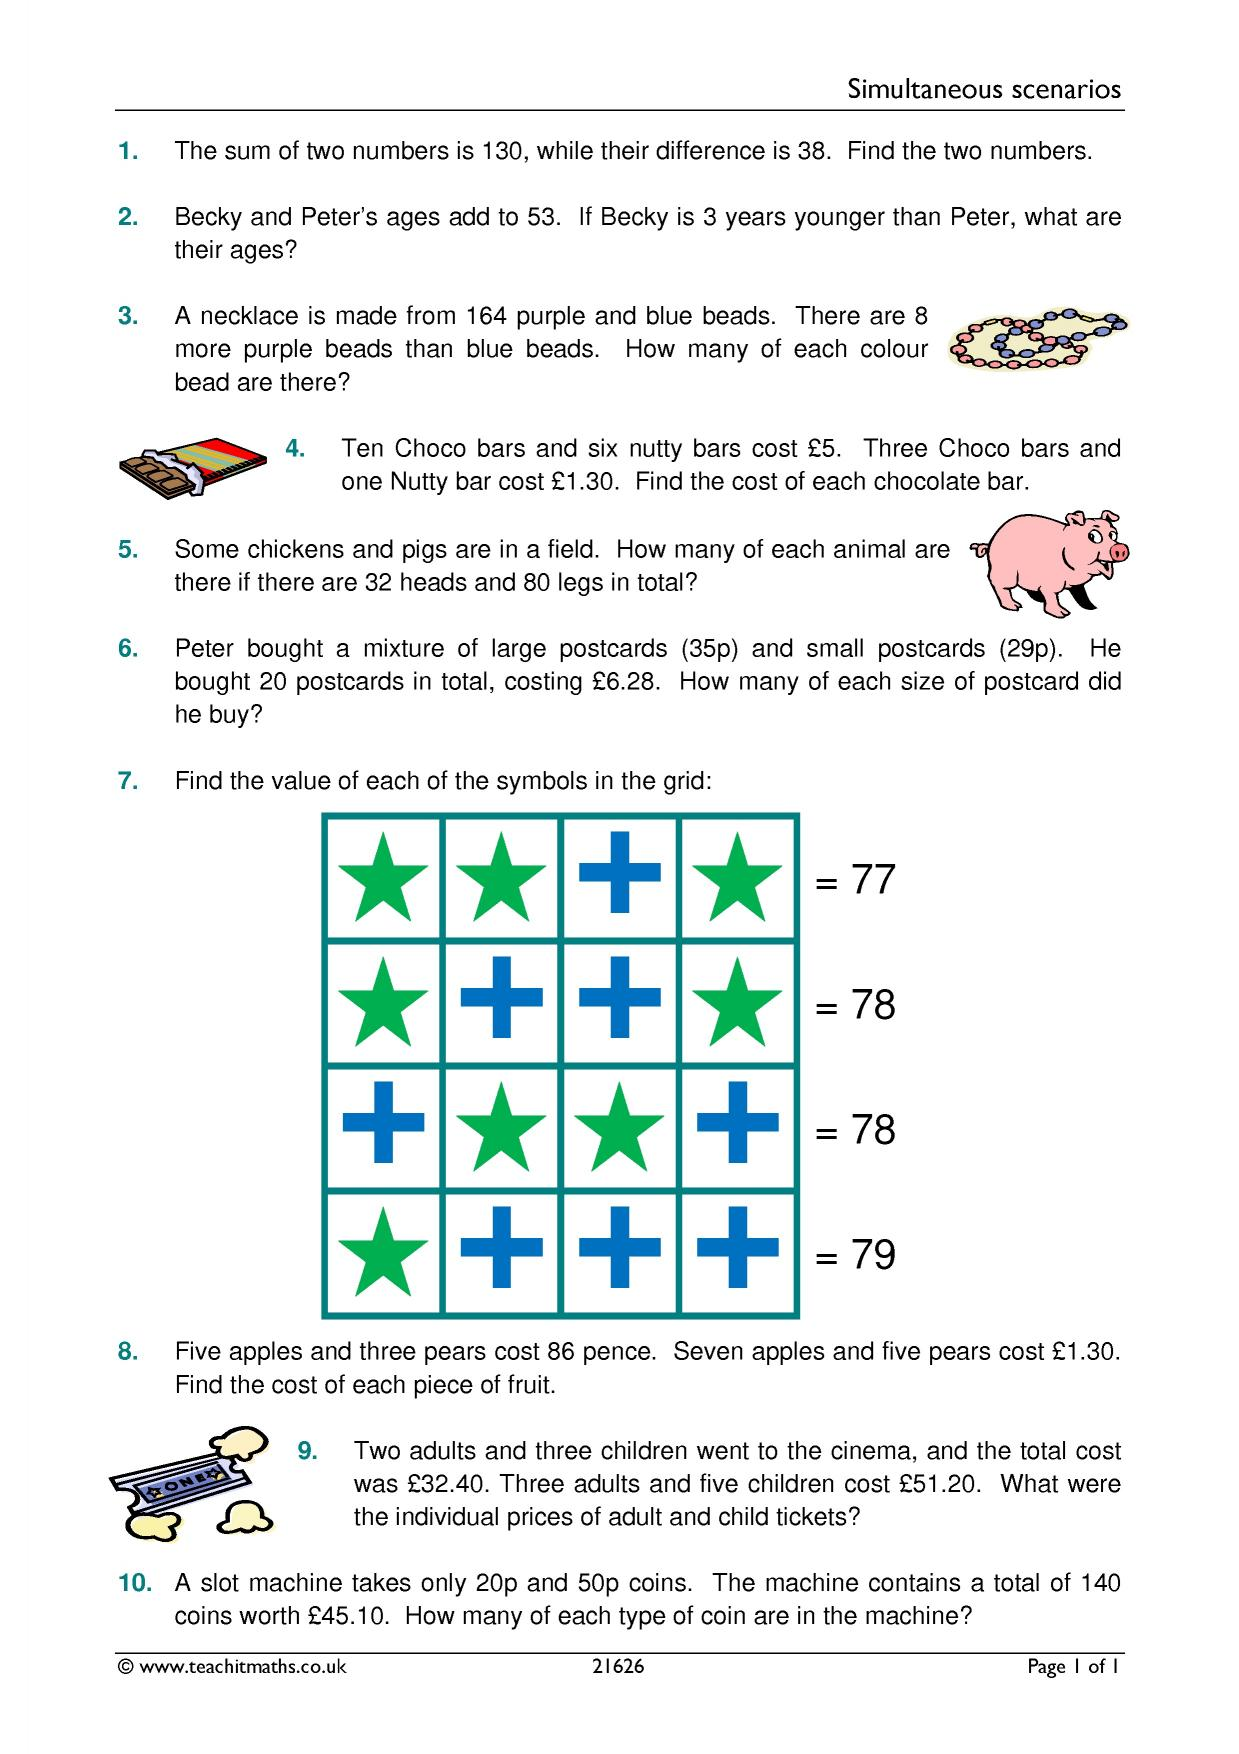 Simple Simultaneous Equations Worksheet